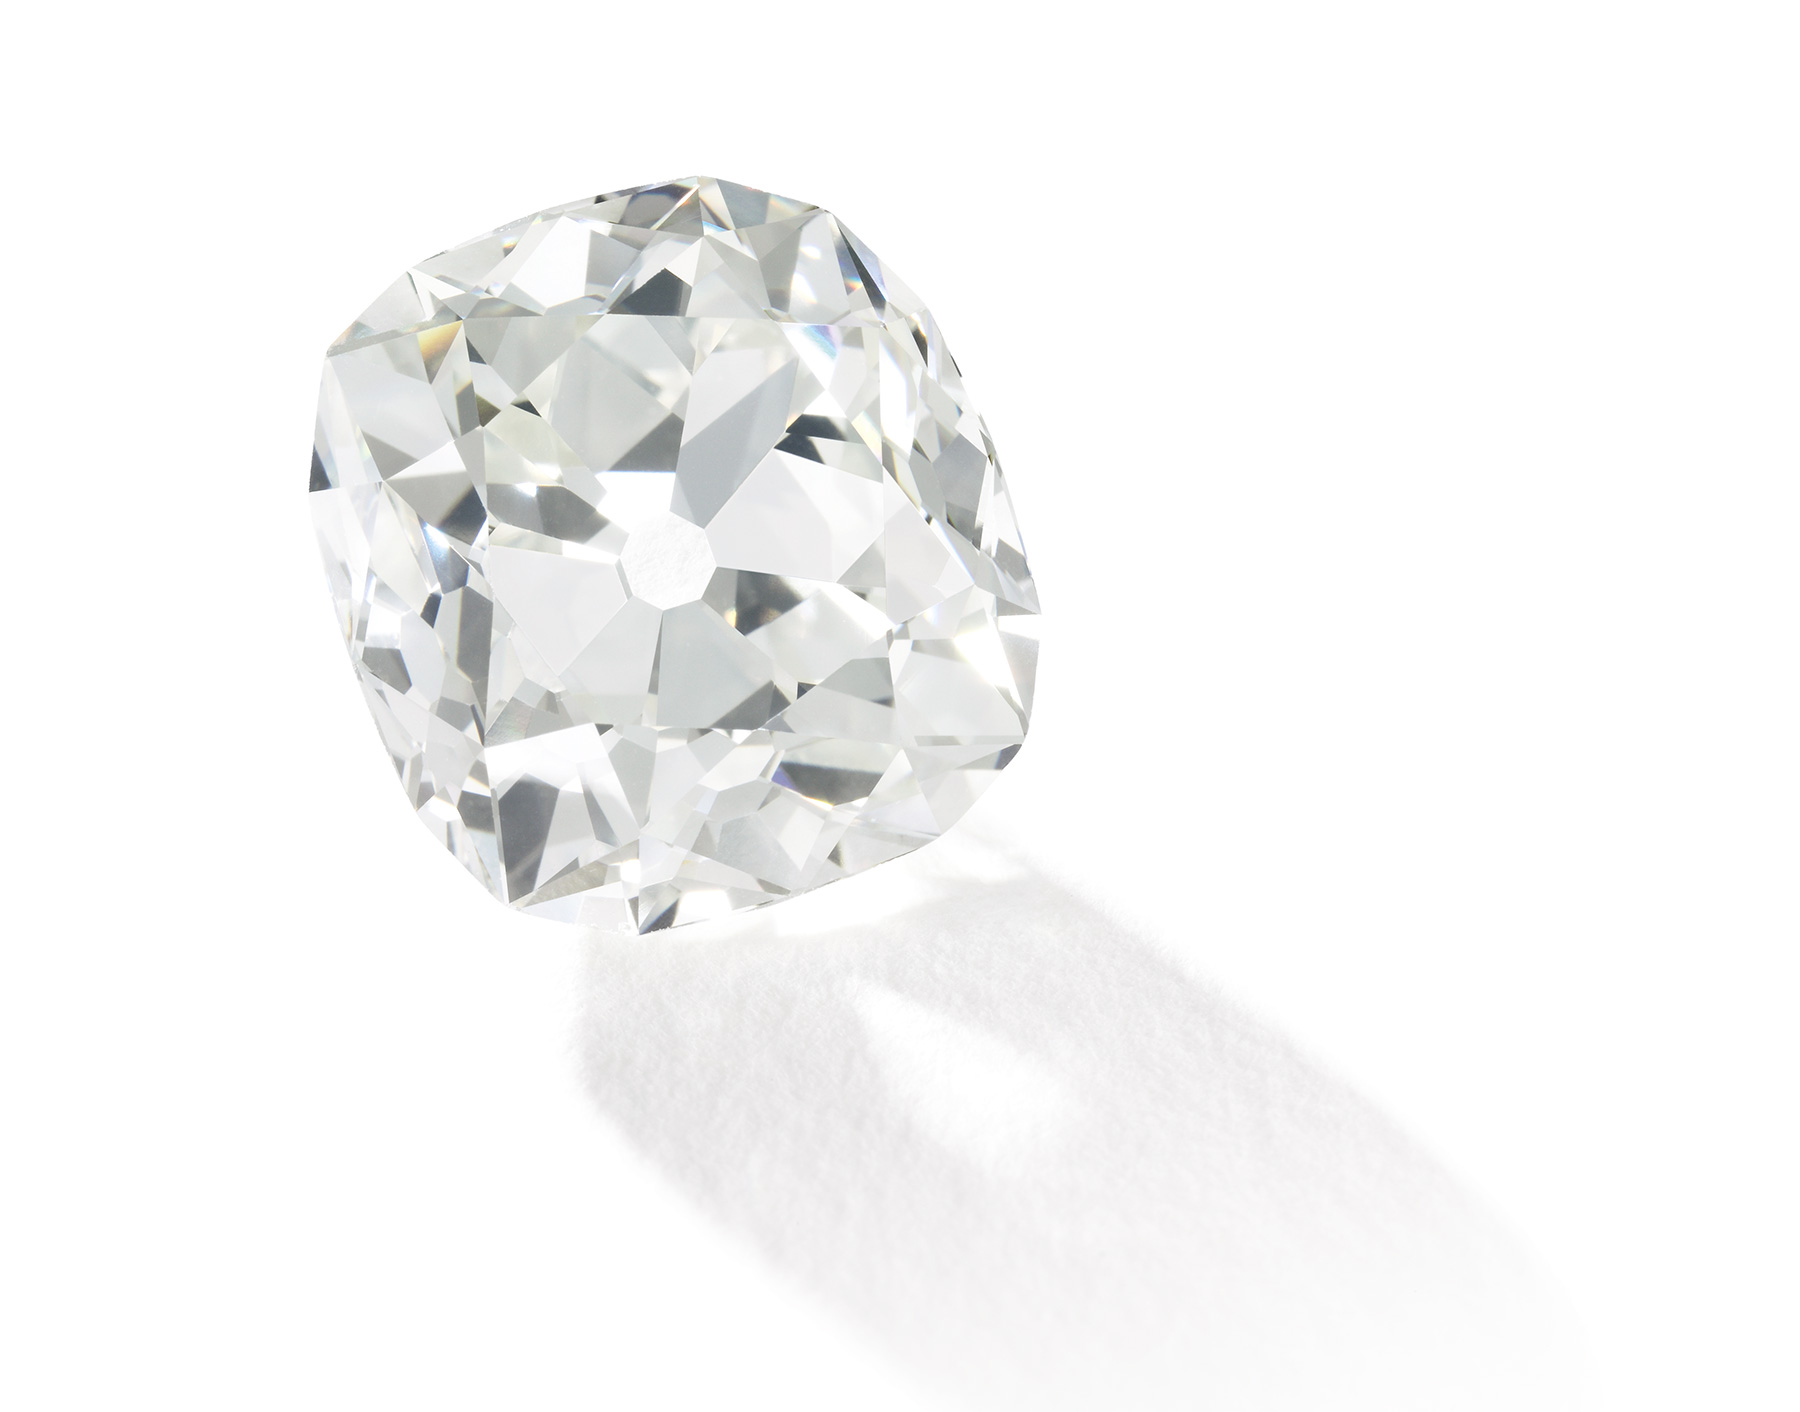 Diamond Bought for $13 Sells for $848K at Sotheby's